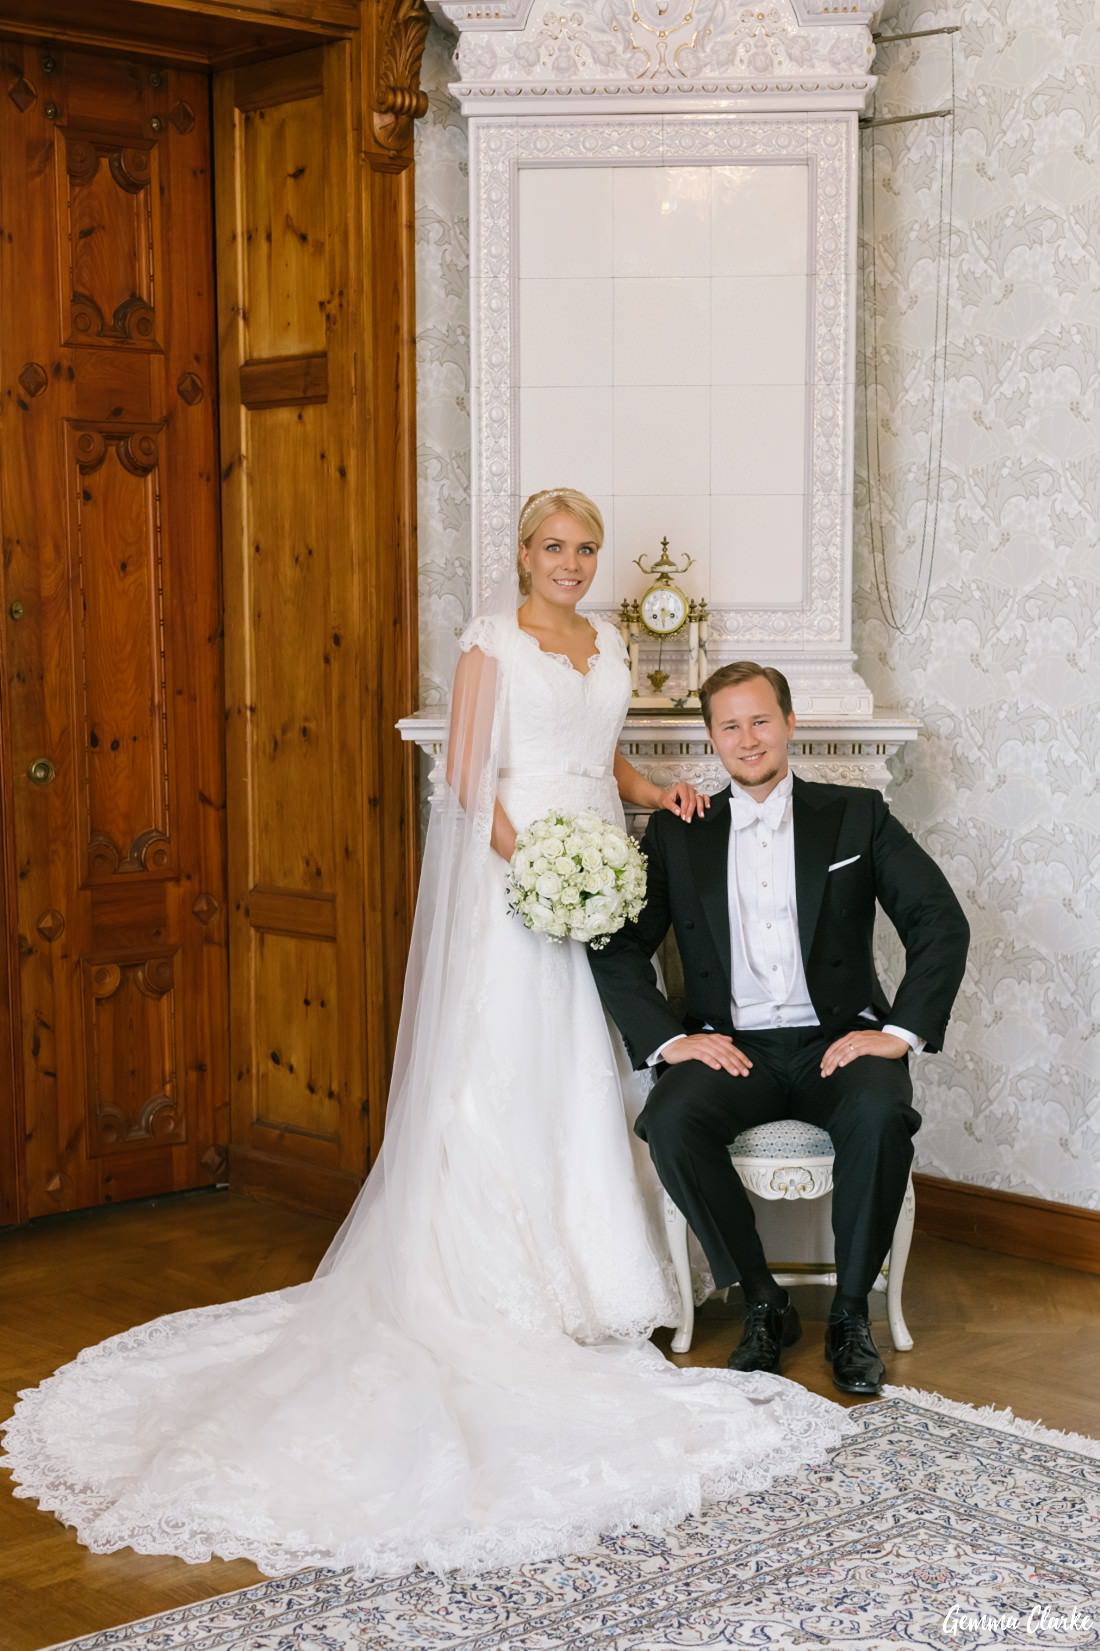 Bride and Groom assume the Swedish Royalty pose in a stunning decorated room at this Tampere Wedding